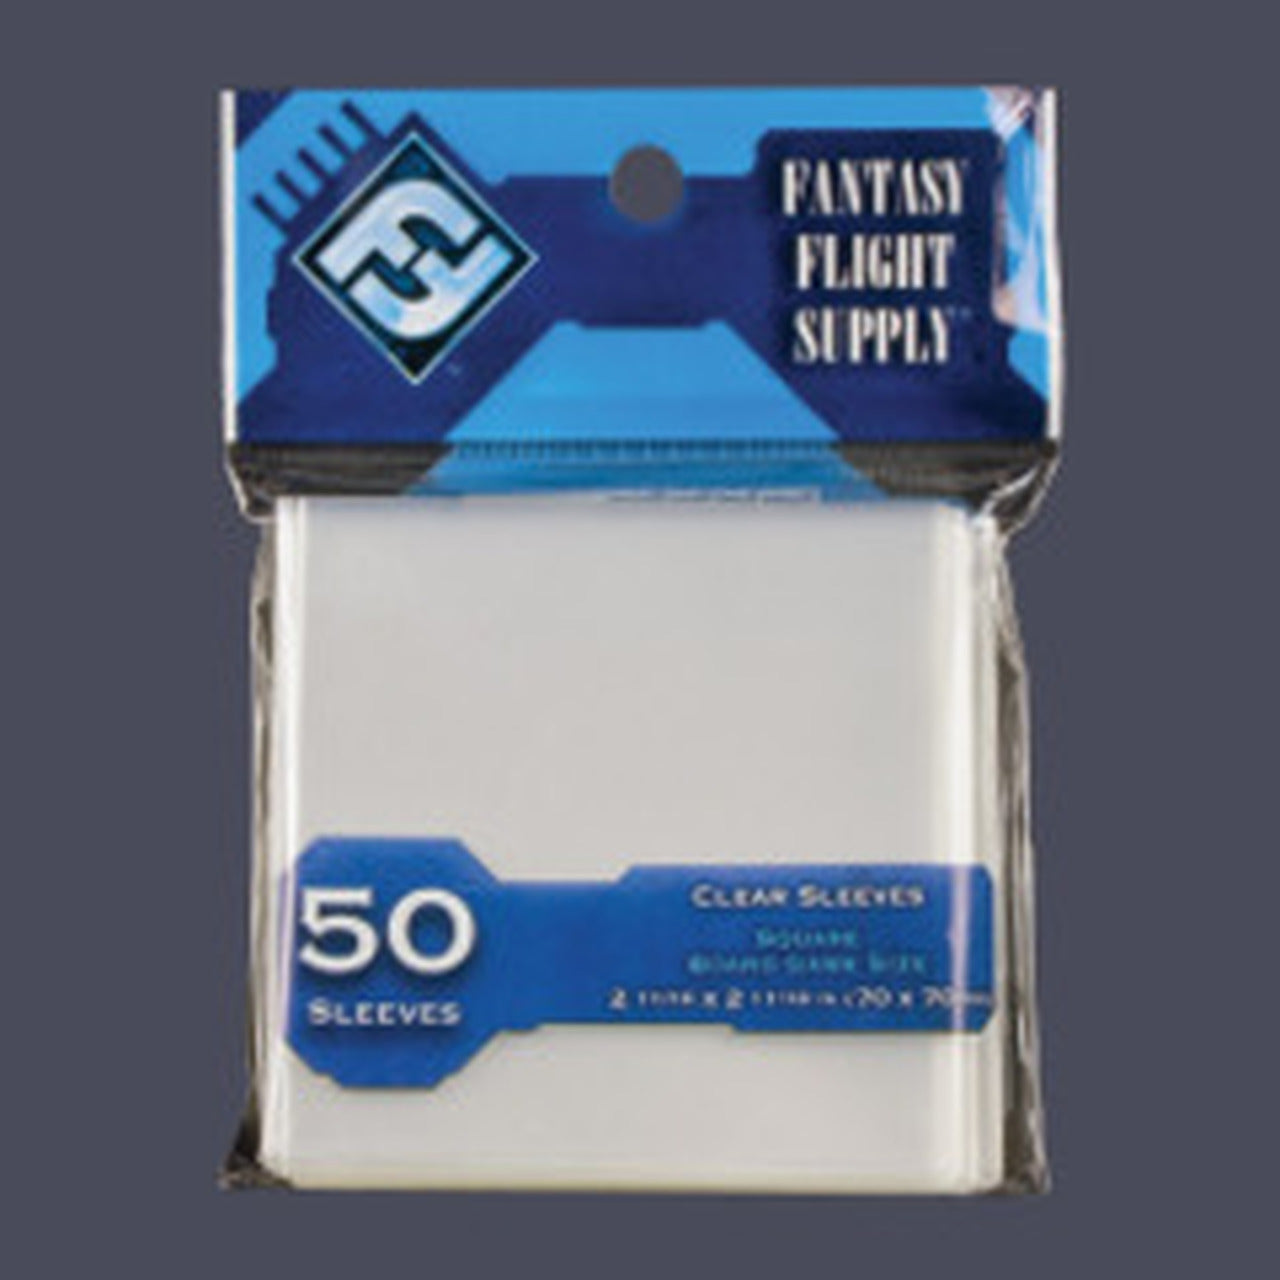 FANTASY FLIGHT Square Card Size Board Game Sleeves Clear 70 x 70mm 50ct Pack FFG